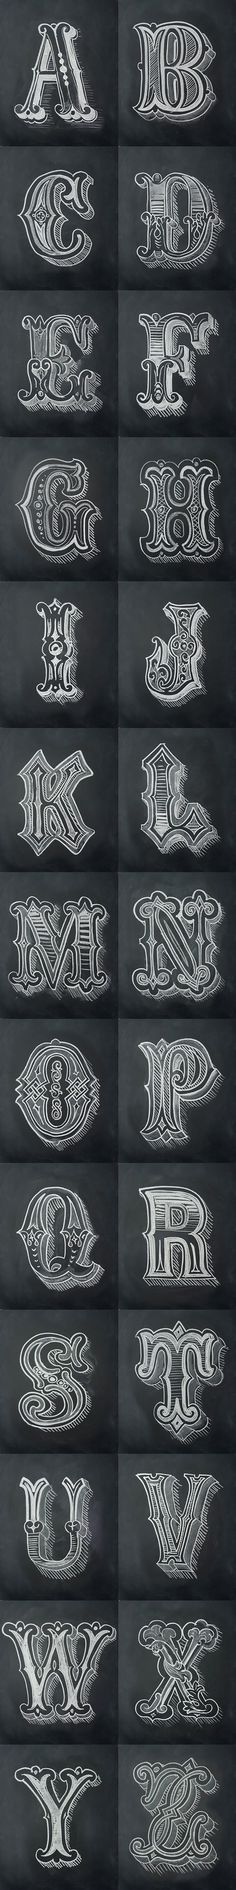 typography inspiration...check em out!